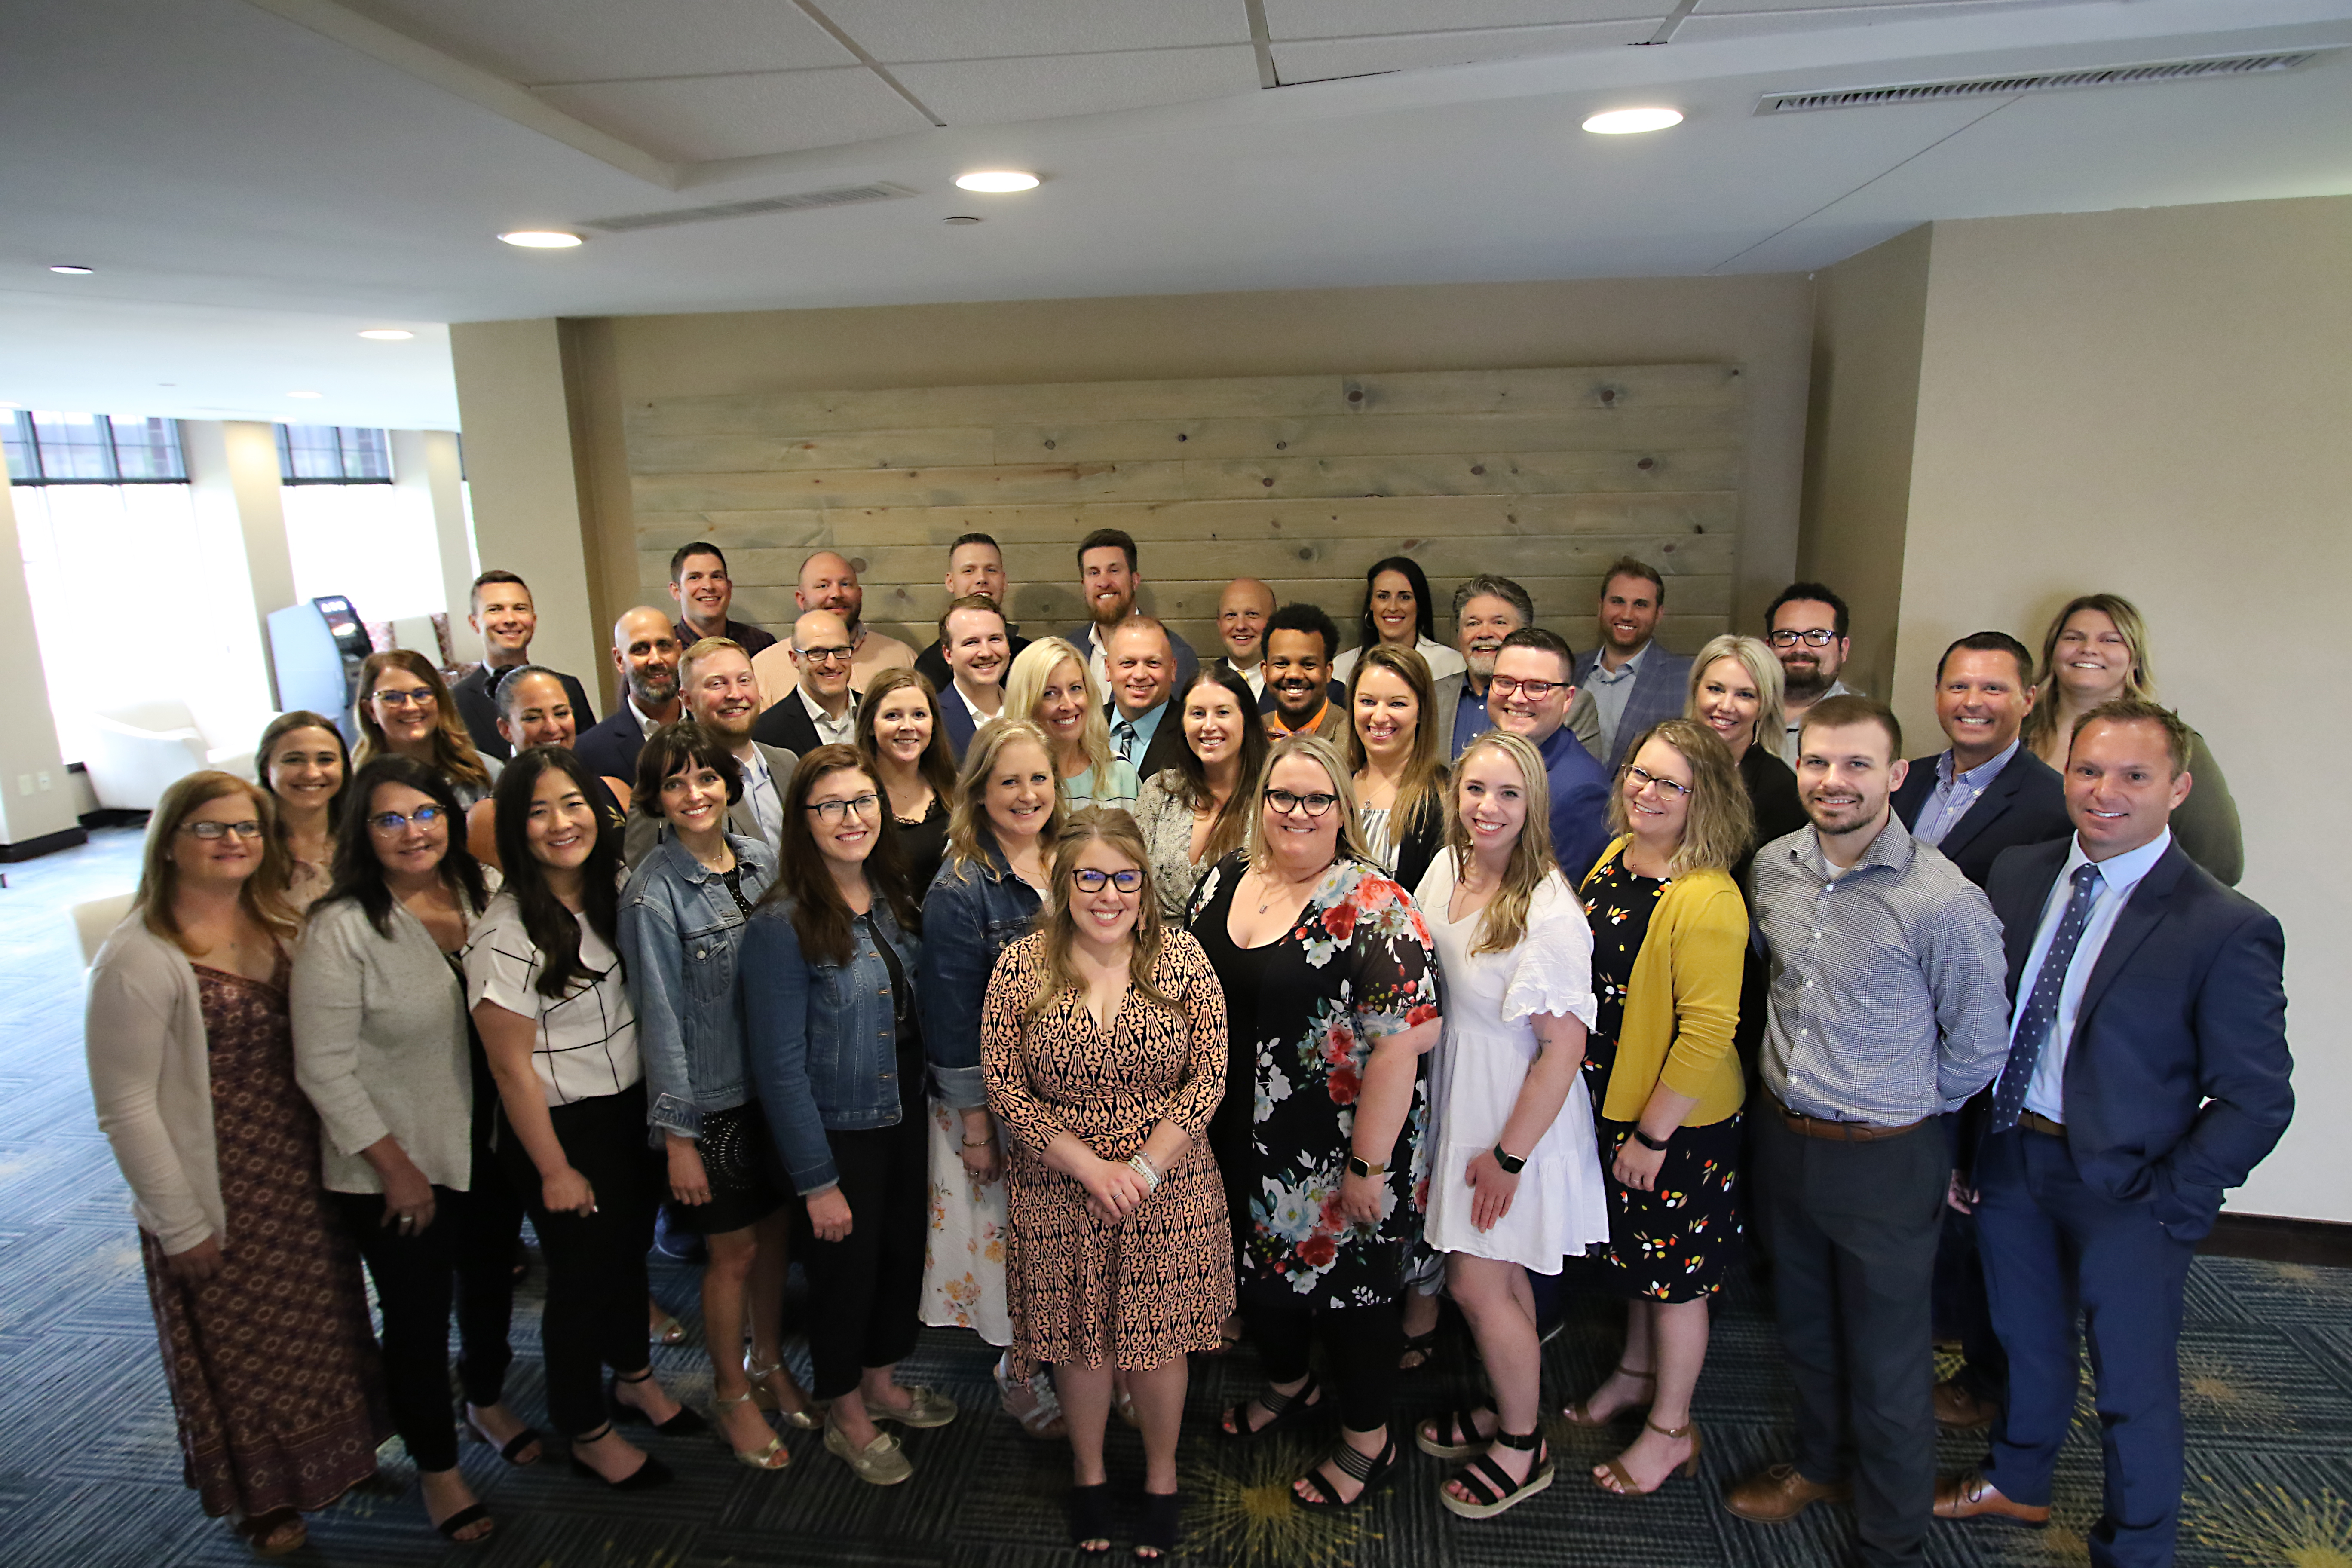 Image for Congratulations to the Leadership FMWF class of 2020-21